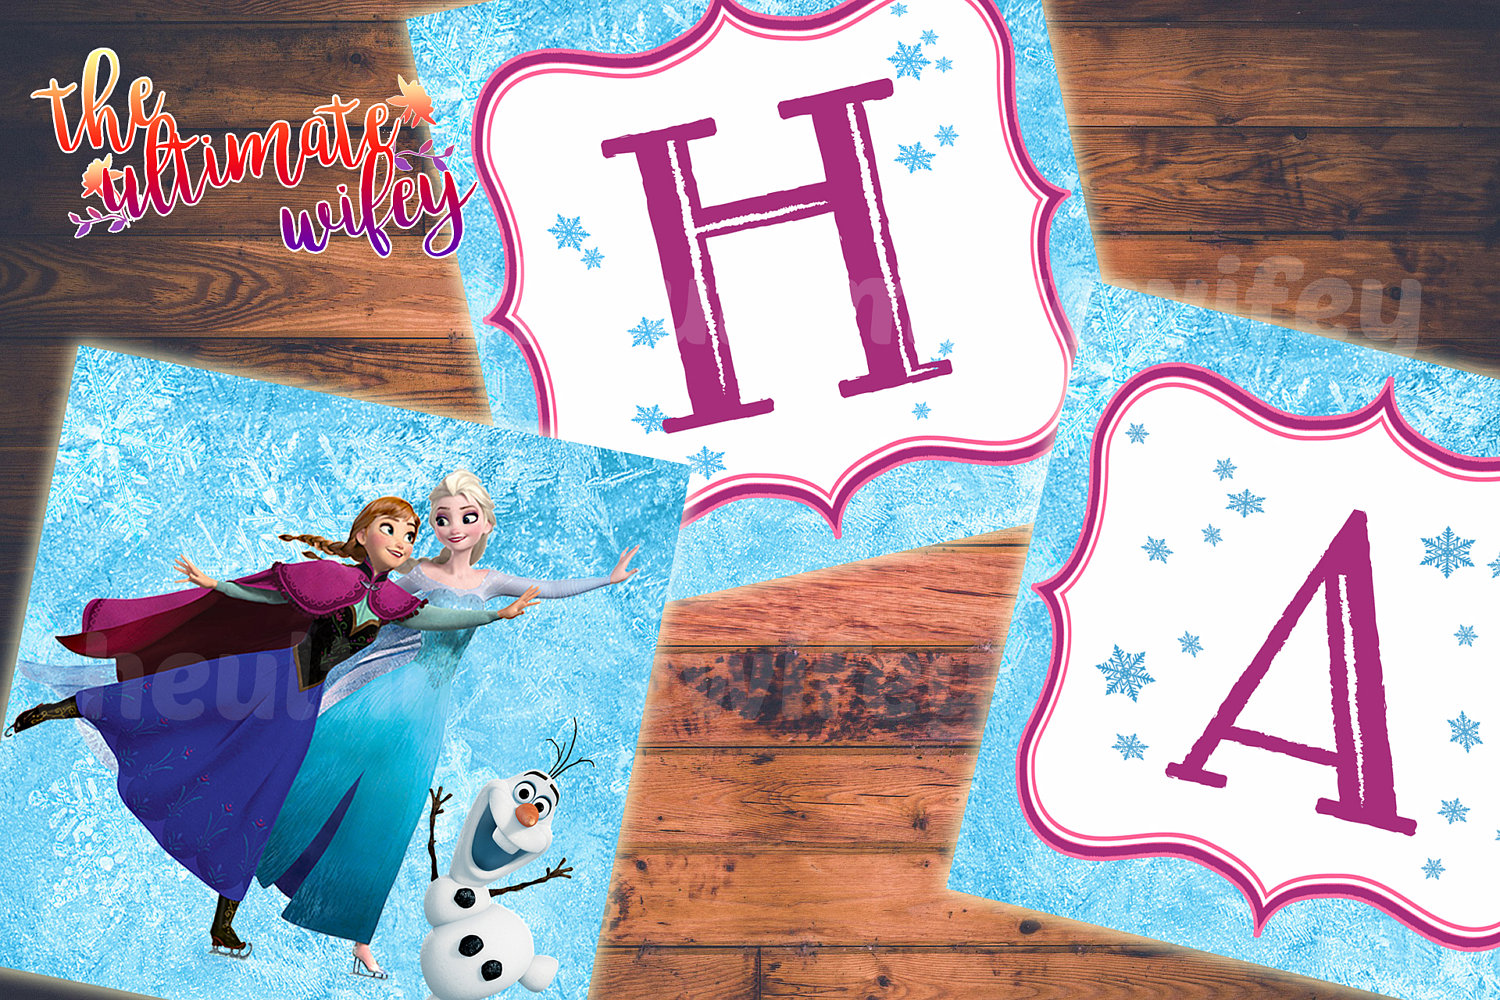 customized birthday banner with picture ; daaa854cc15c264e41523cba4934da74